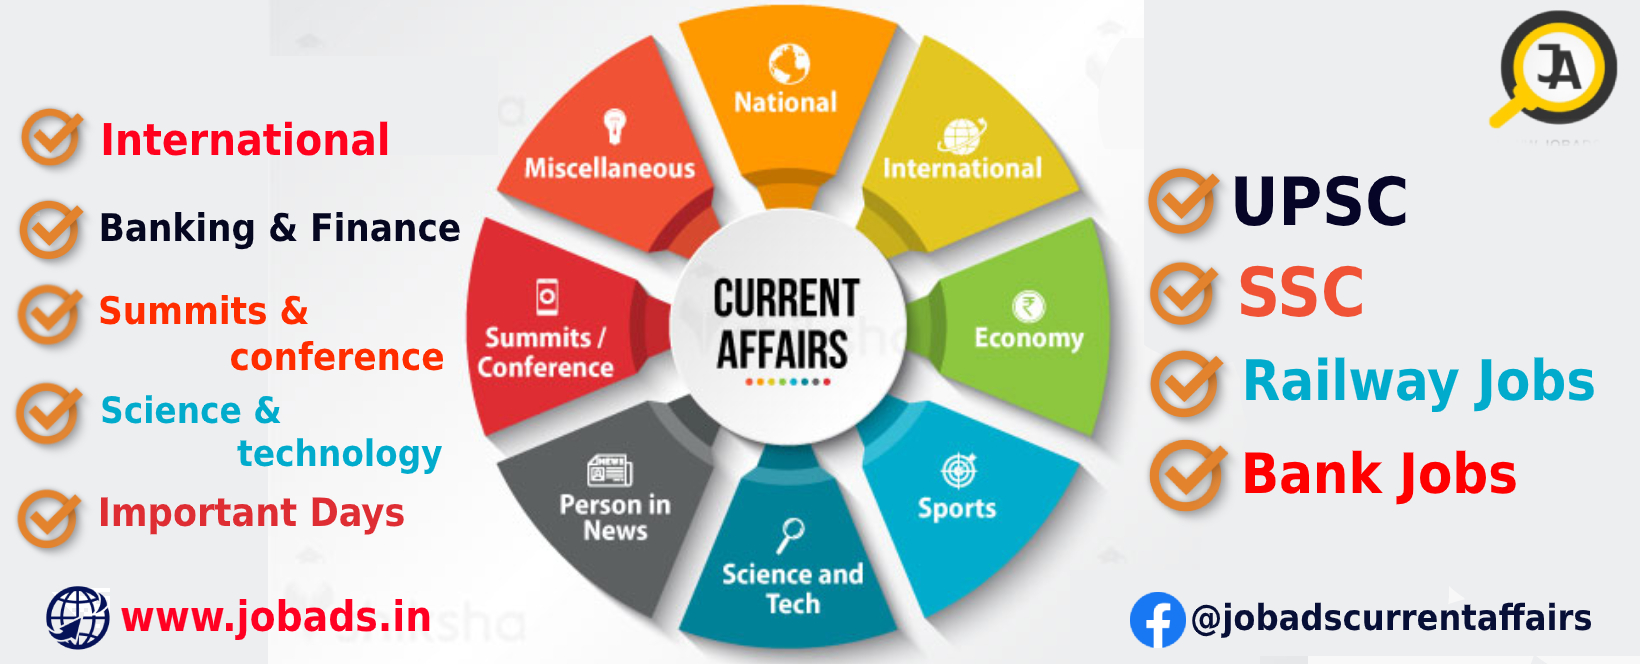 February 2021 Current Affairs